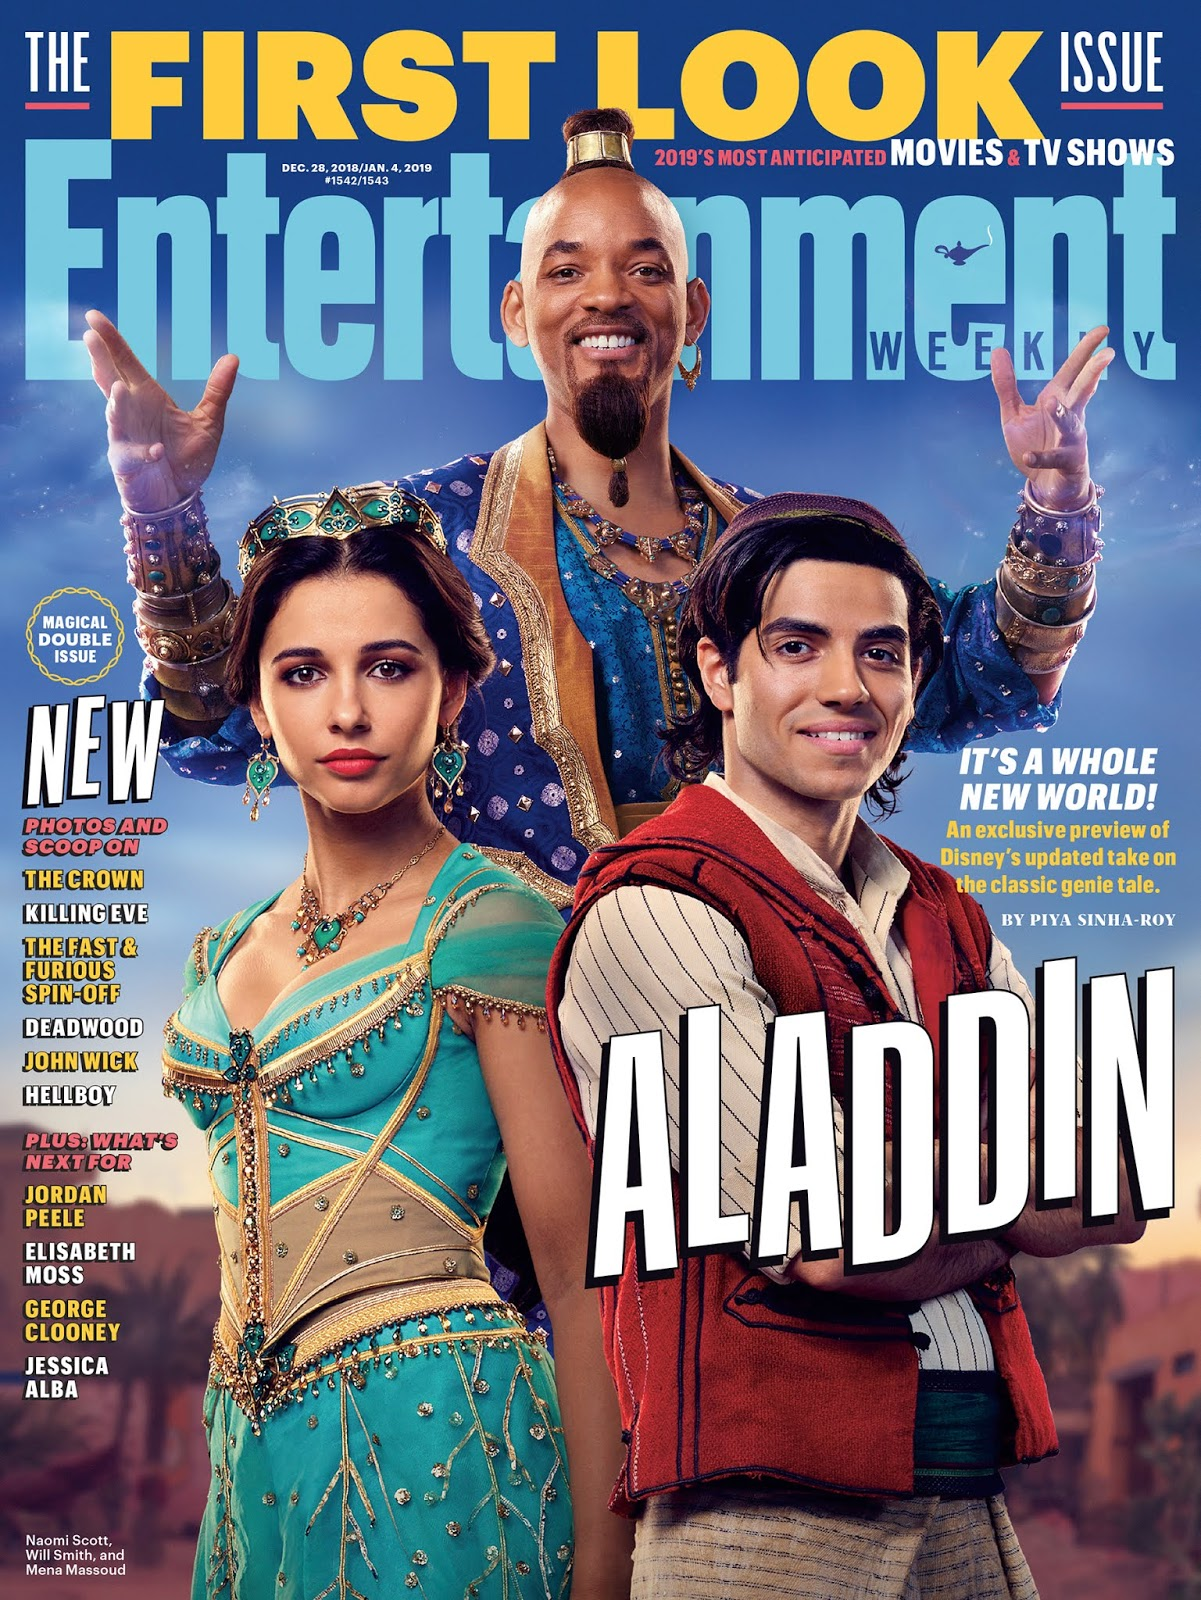 Here's a first look at Guy Ritchie's Aladdin